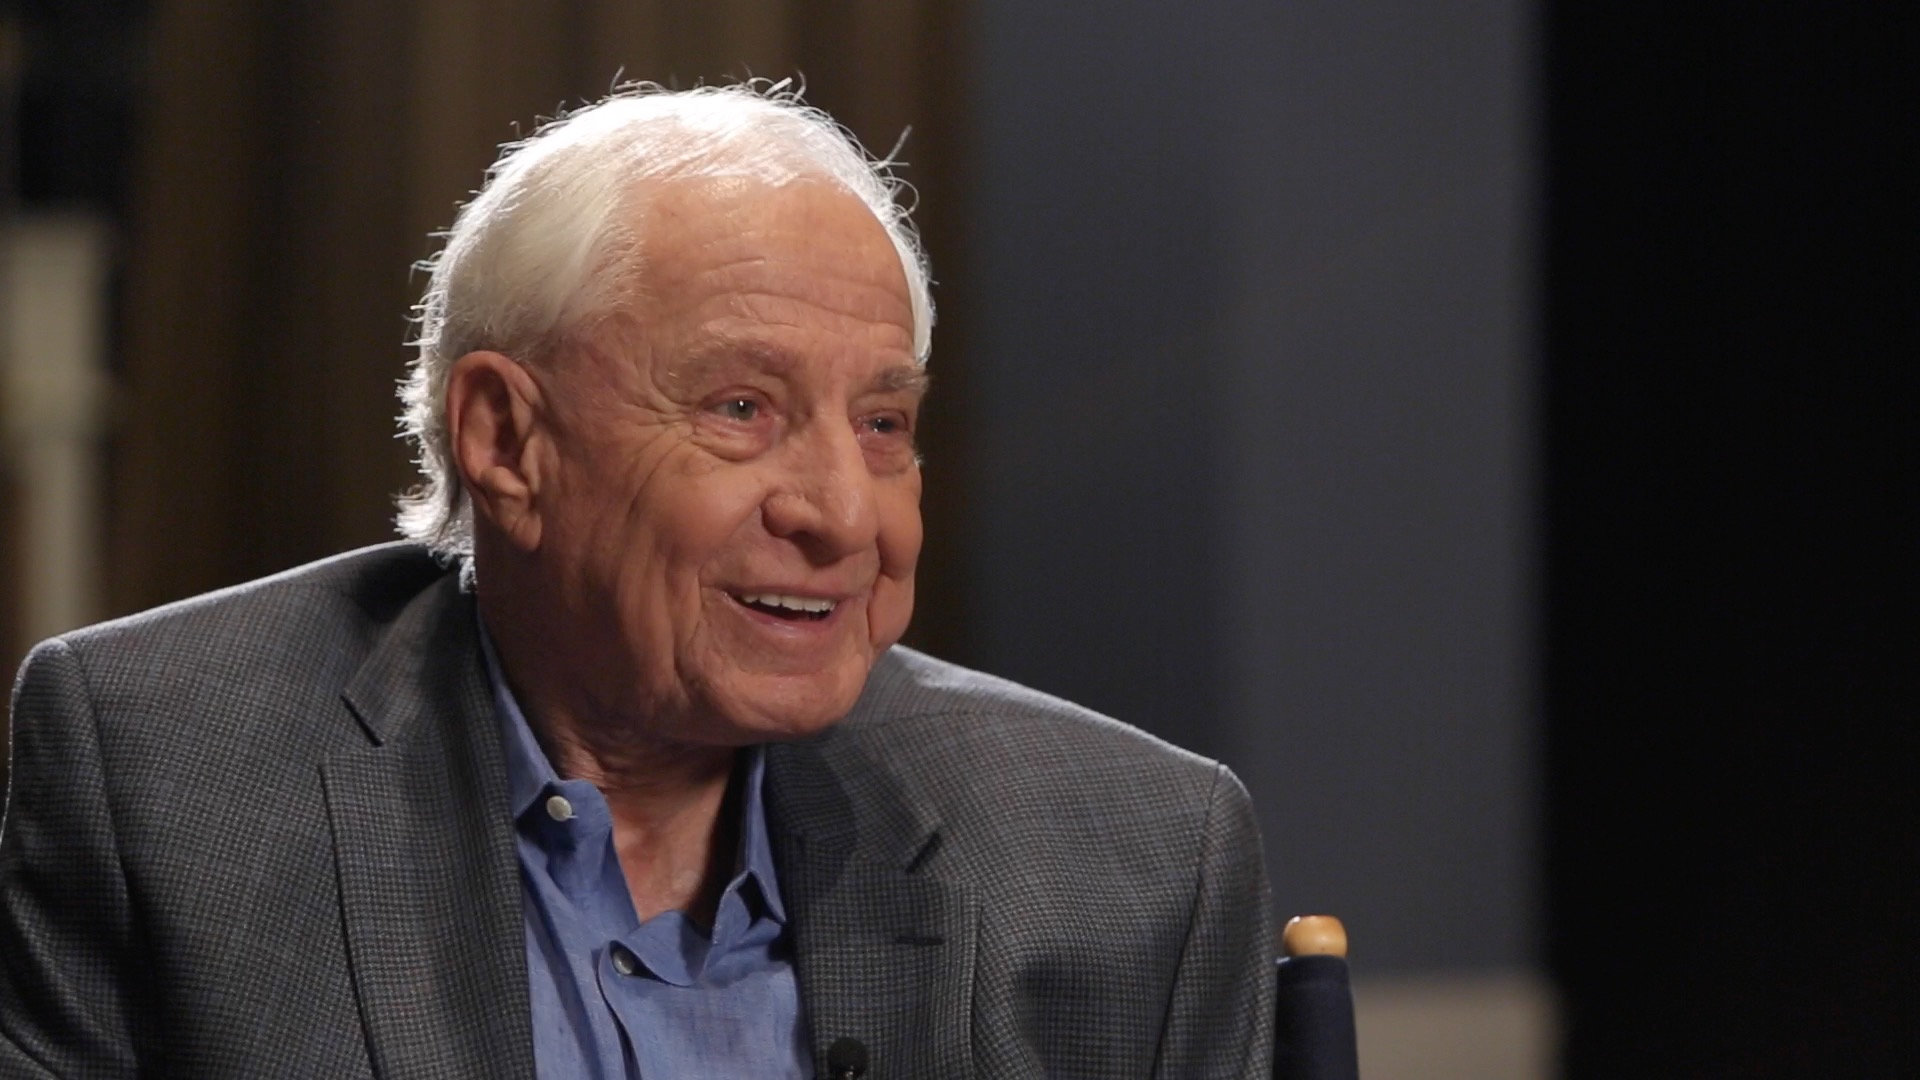 garry marshall bio